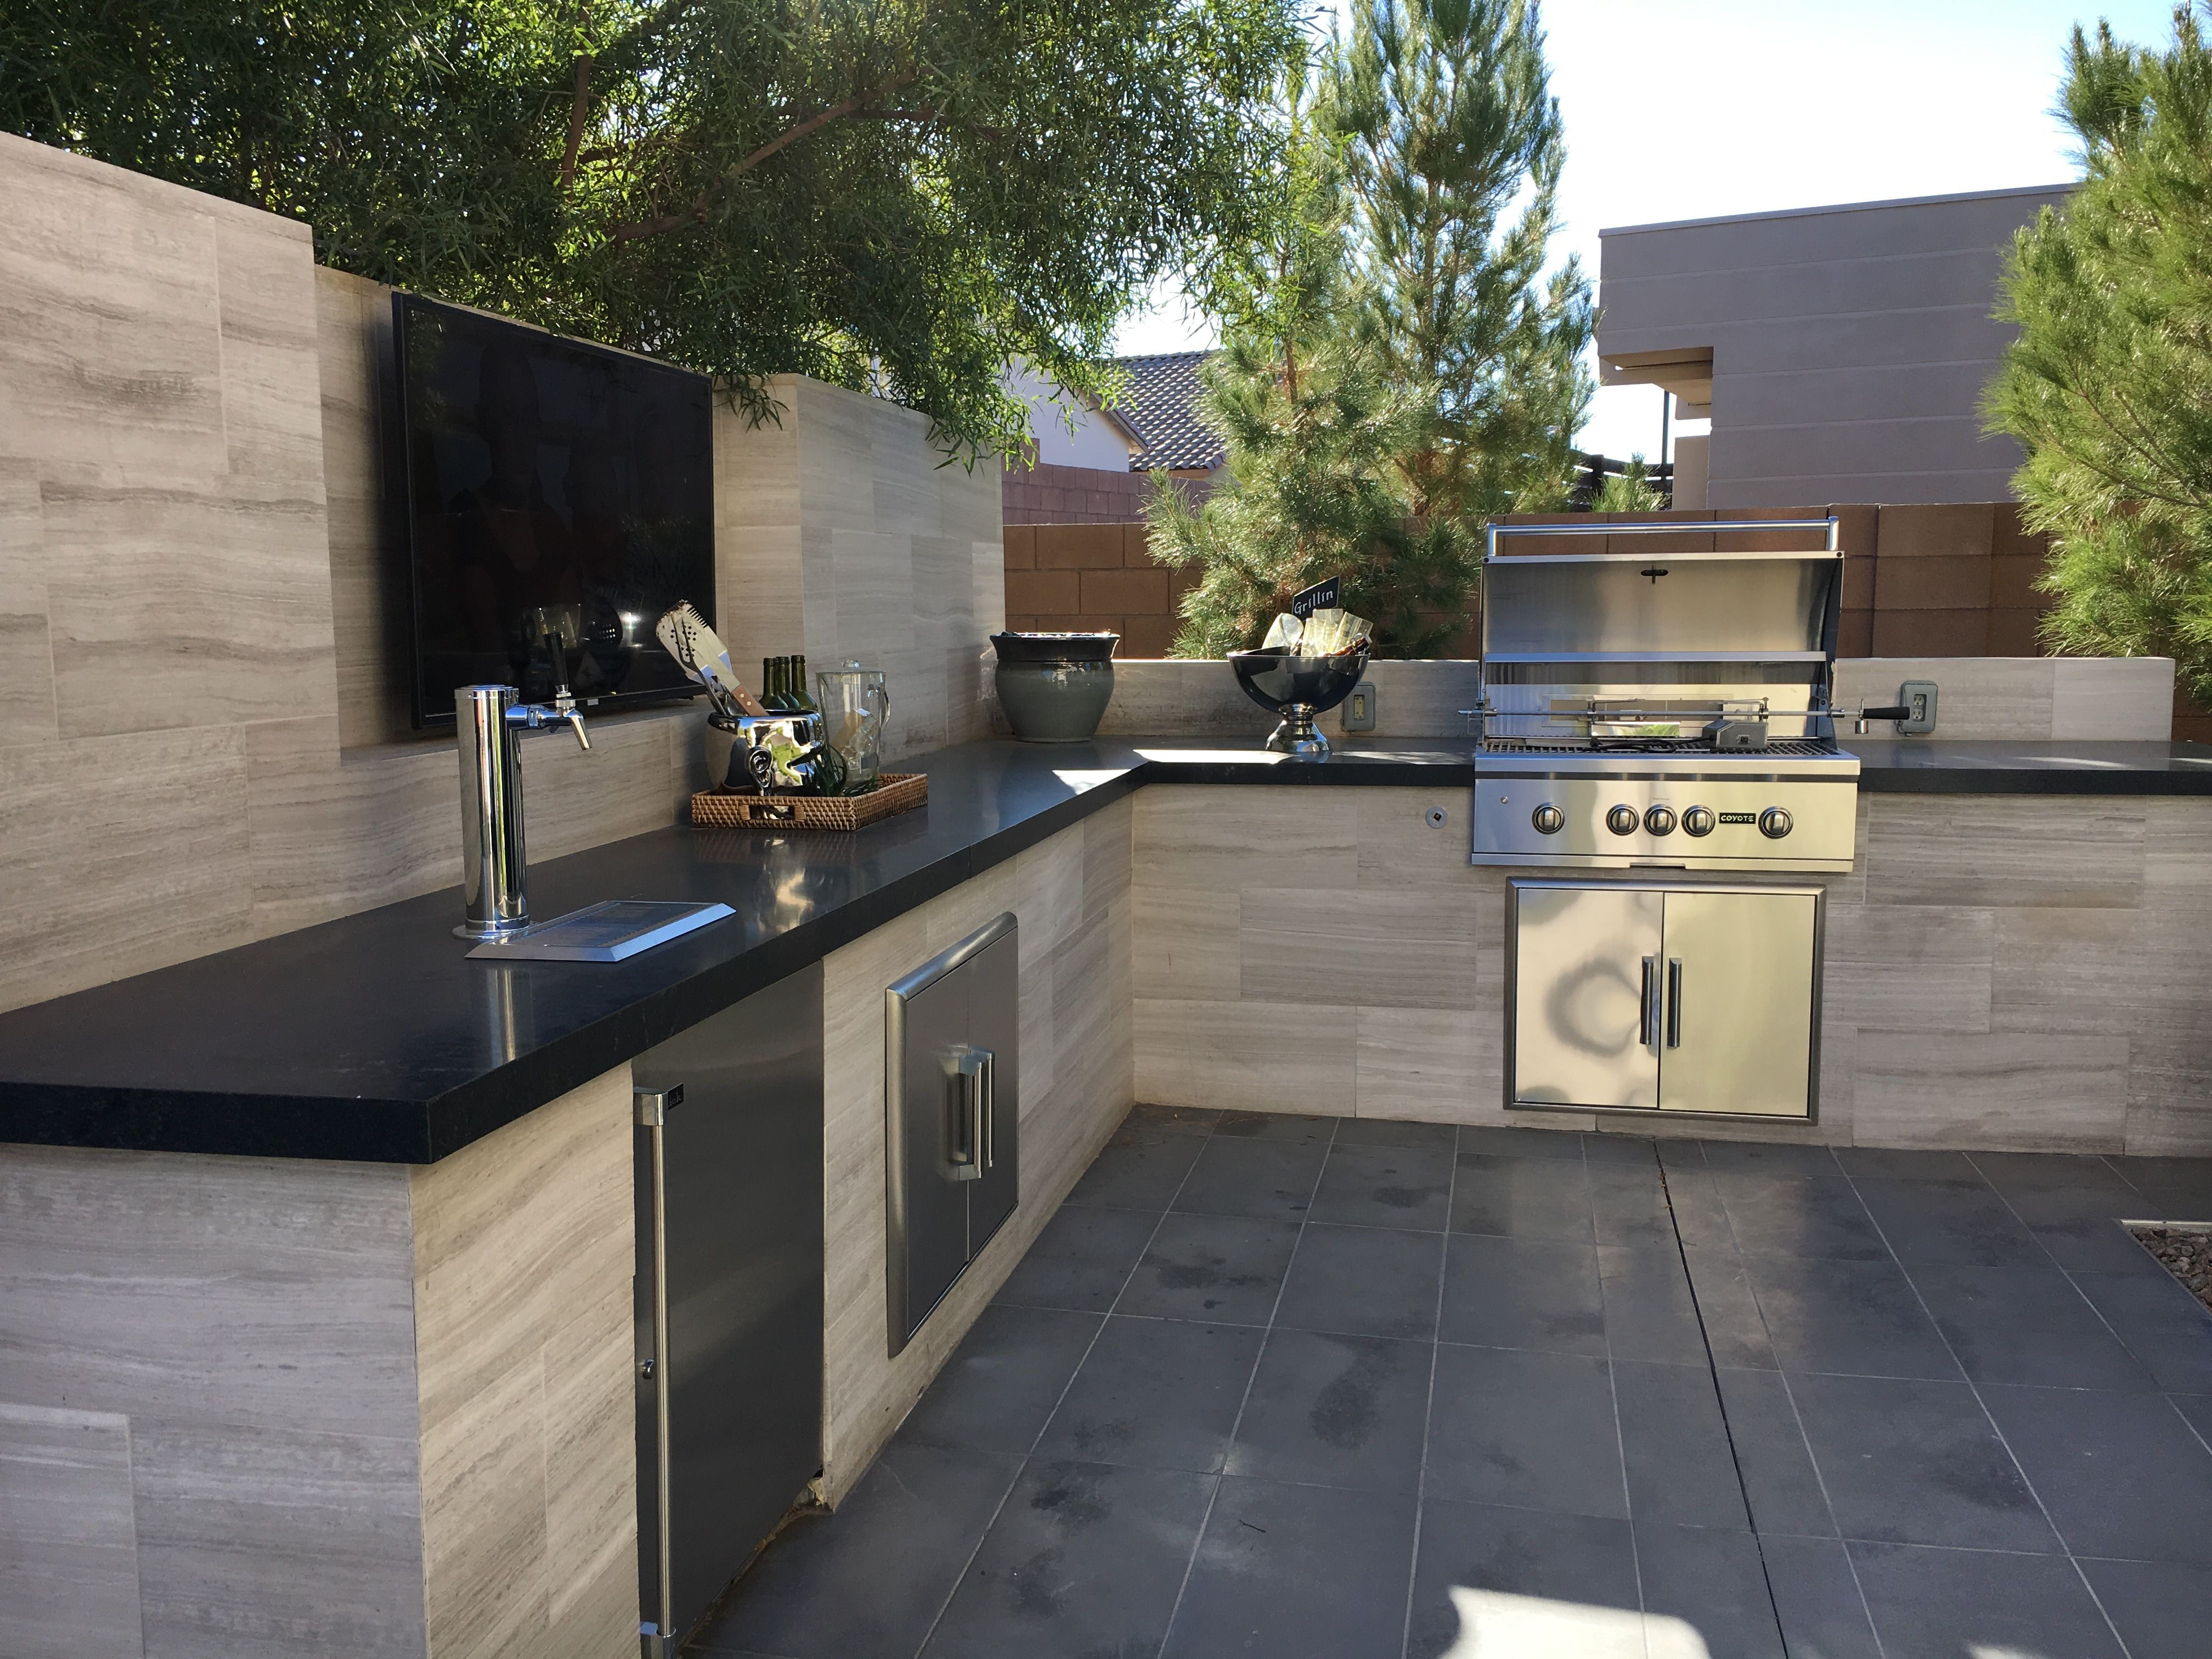 Concept For Wall Attached To Back Galley Counter Materials Smooth Plaster Base Upper Stone Bric Outdoor Kitchen Outdoor Fireplace Designs Backyard Kitchen